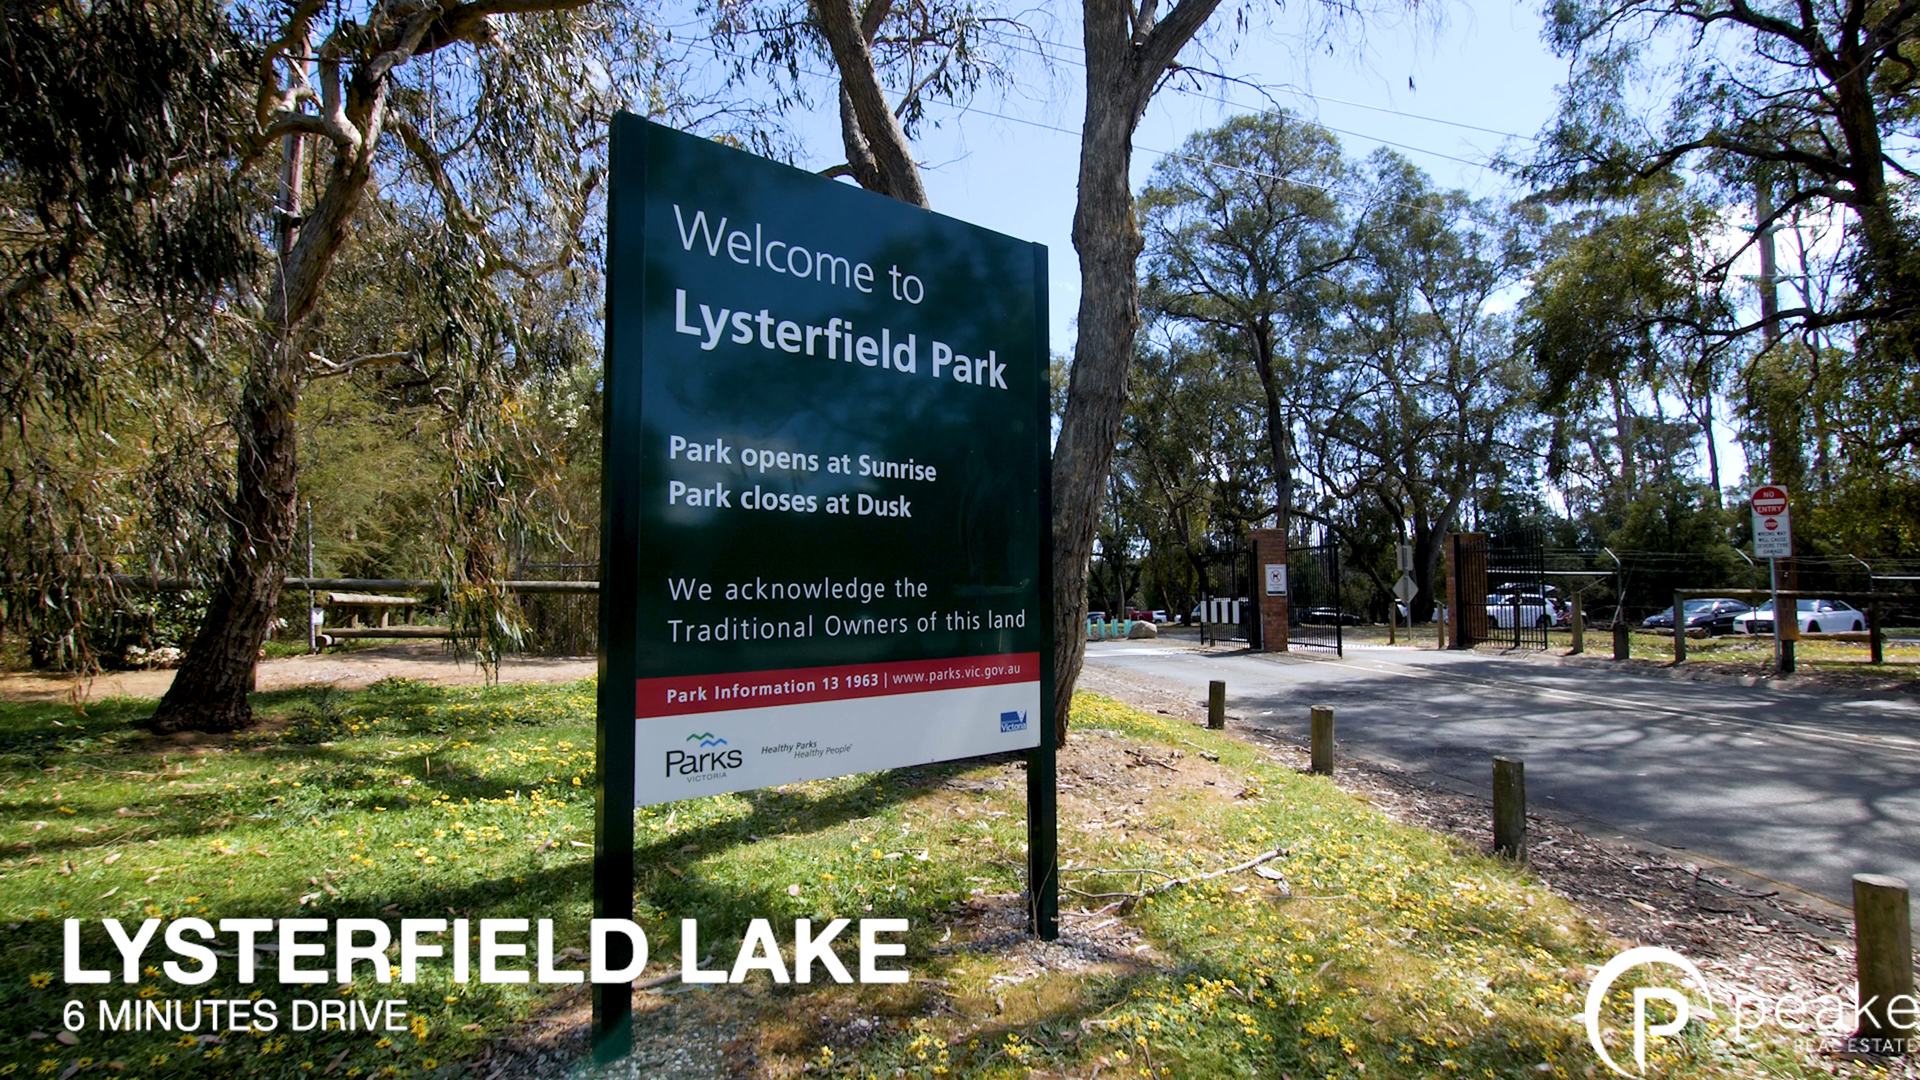 Lysterfield Lake text